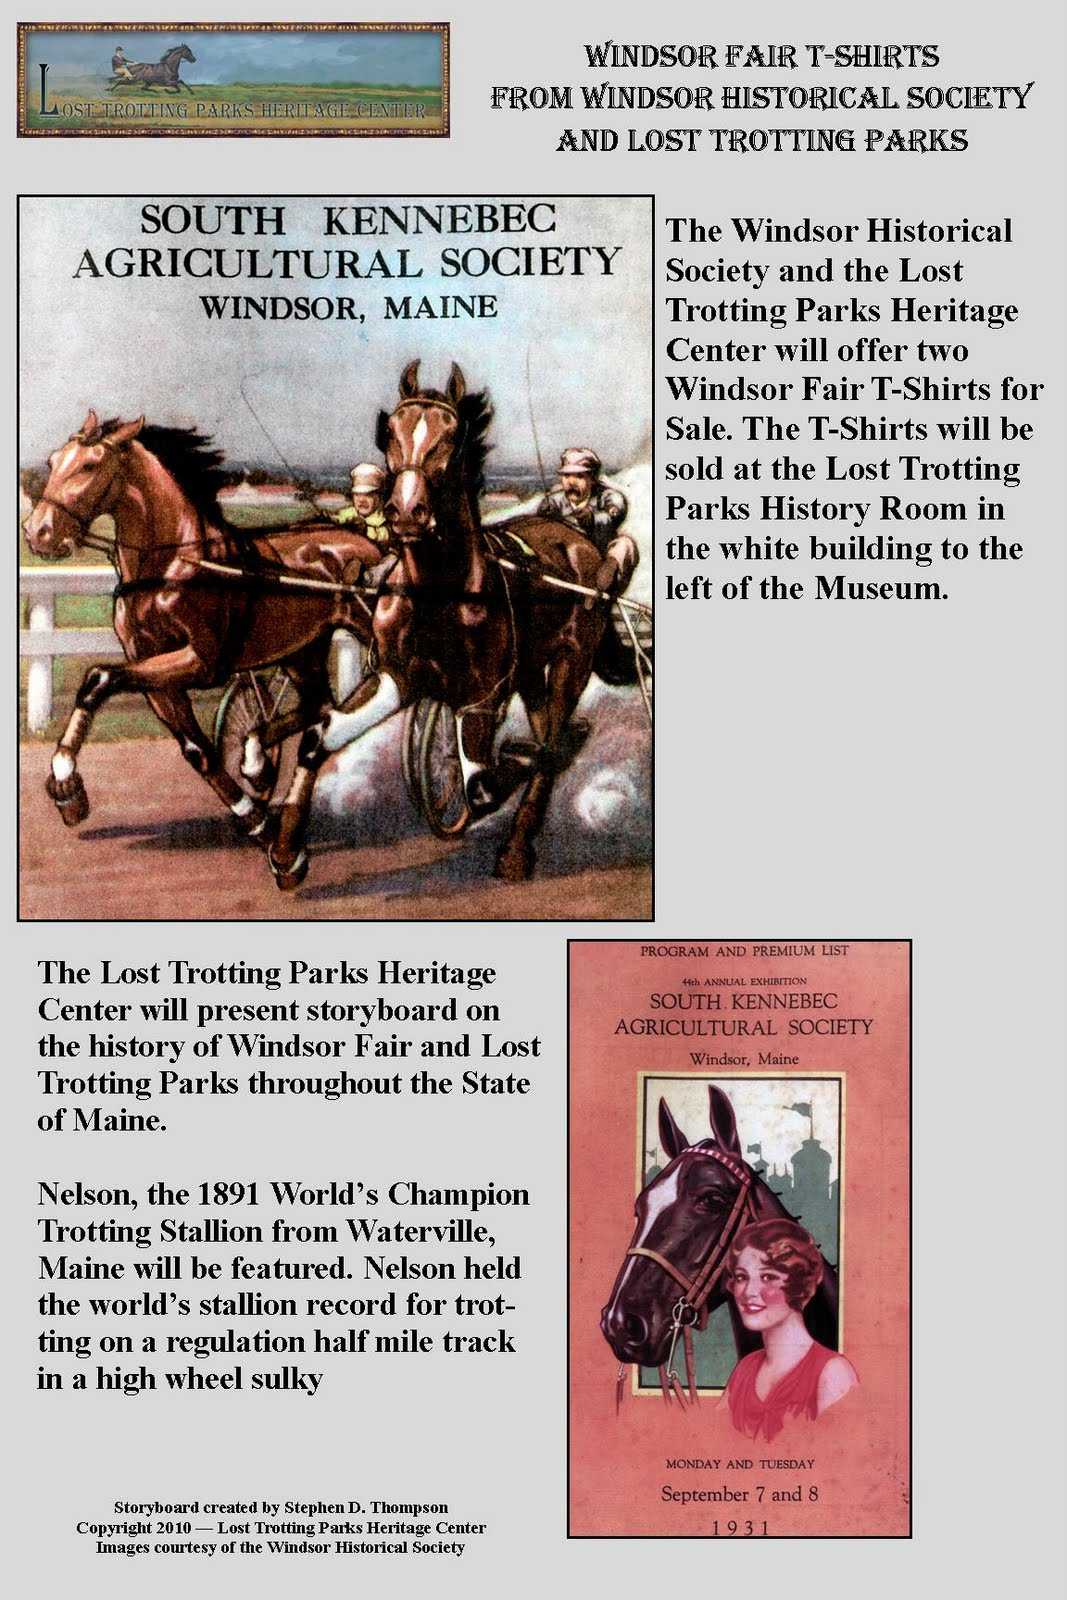 The Lost Trotting Parks Heritage Center -- Storyboard